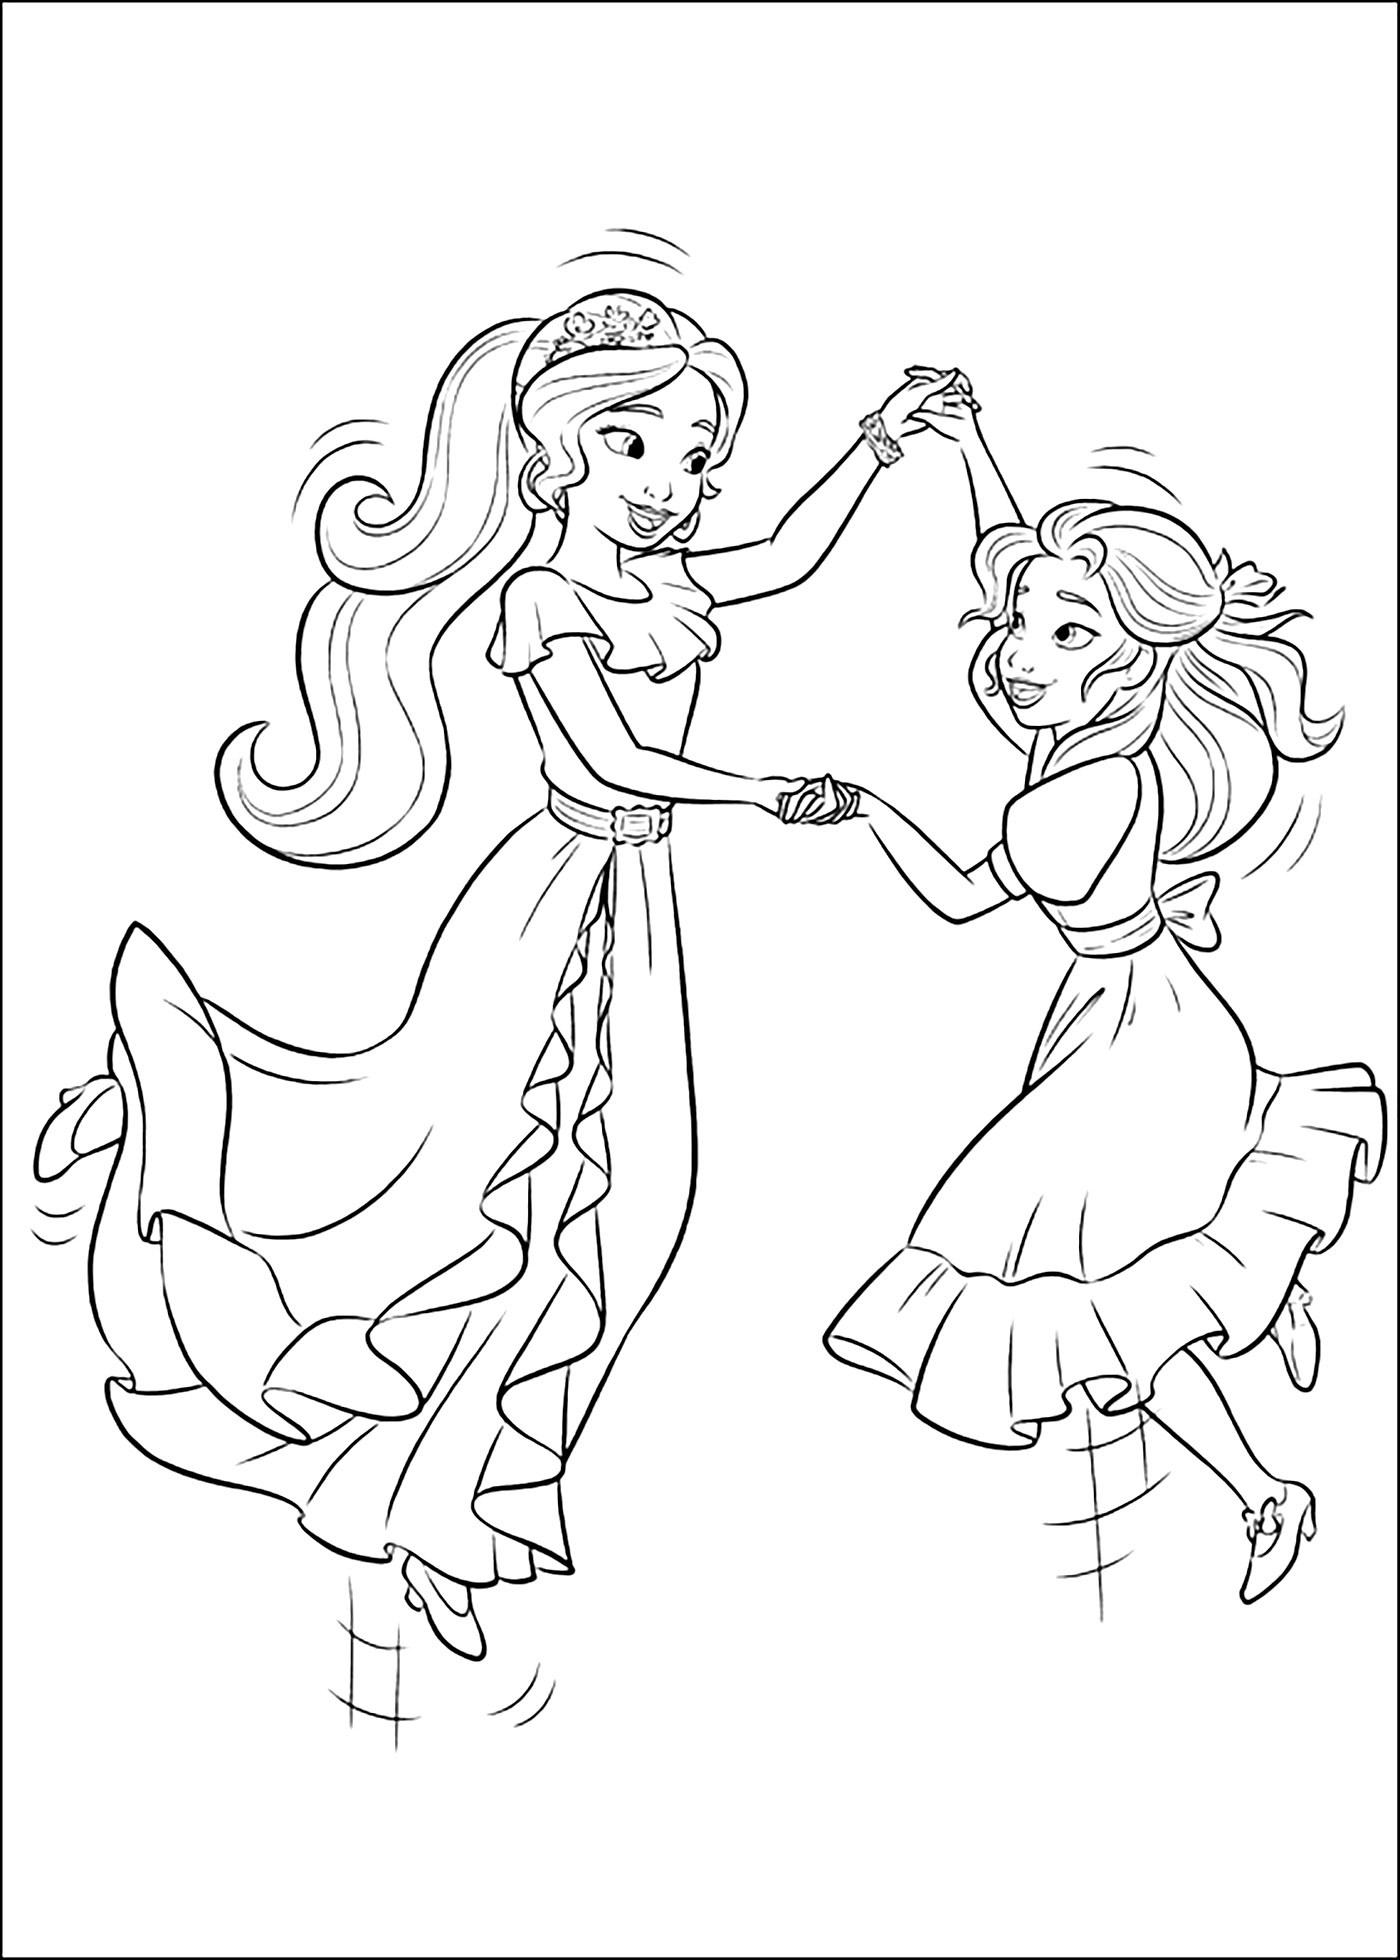 It's just an image of Gratifying princess elena coloring page